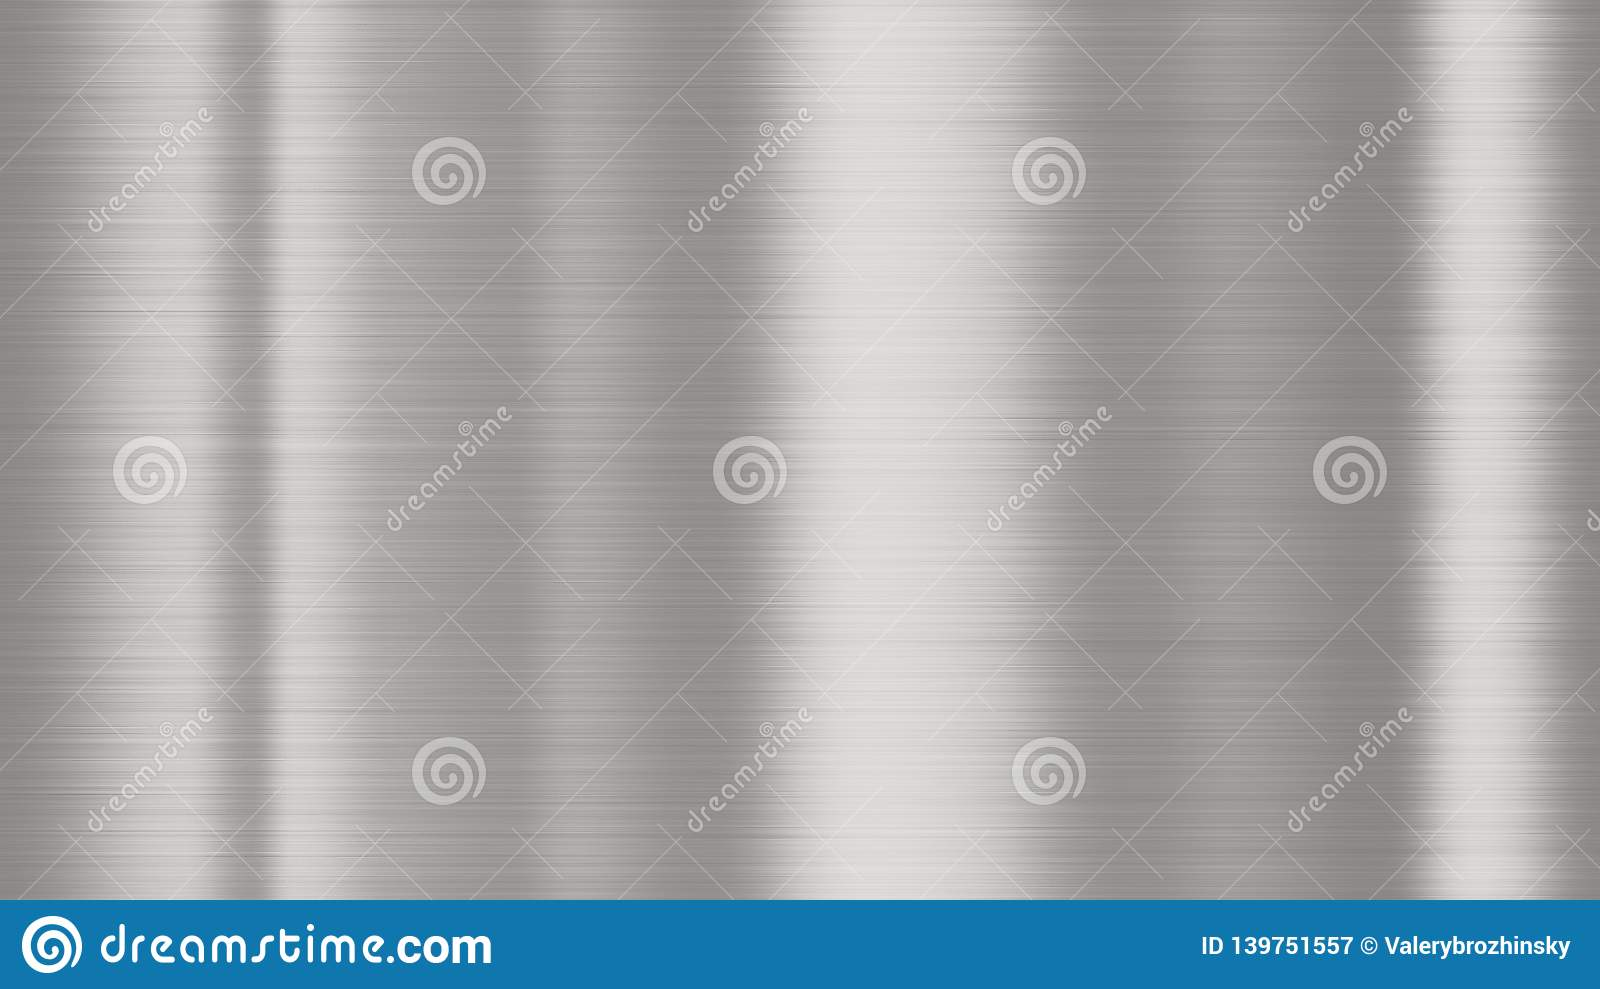 Shiny brushed metal background texture. Polished metallic steel plate sheet metal glossy shiny silver